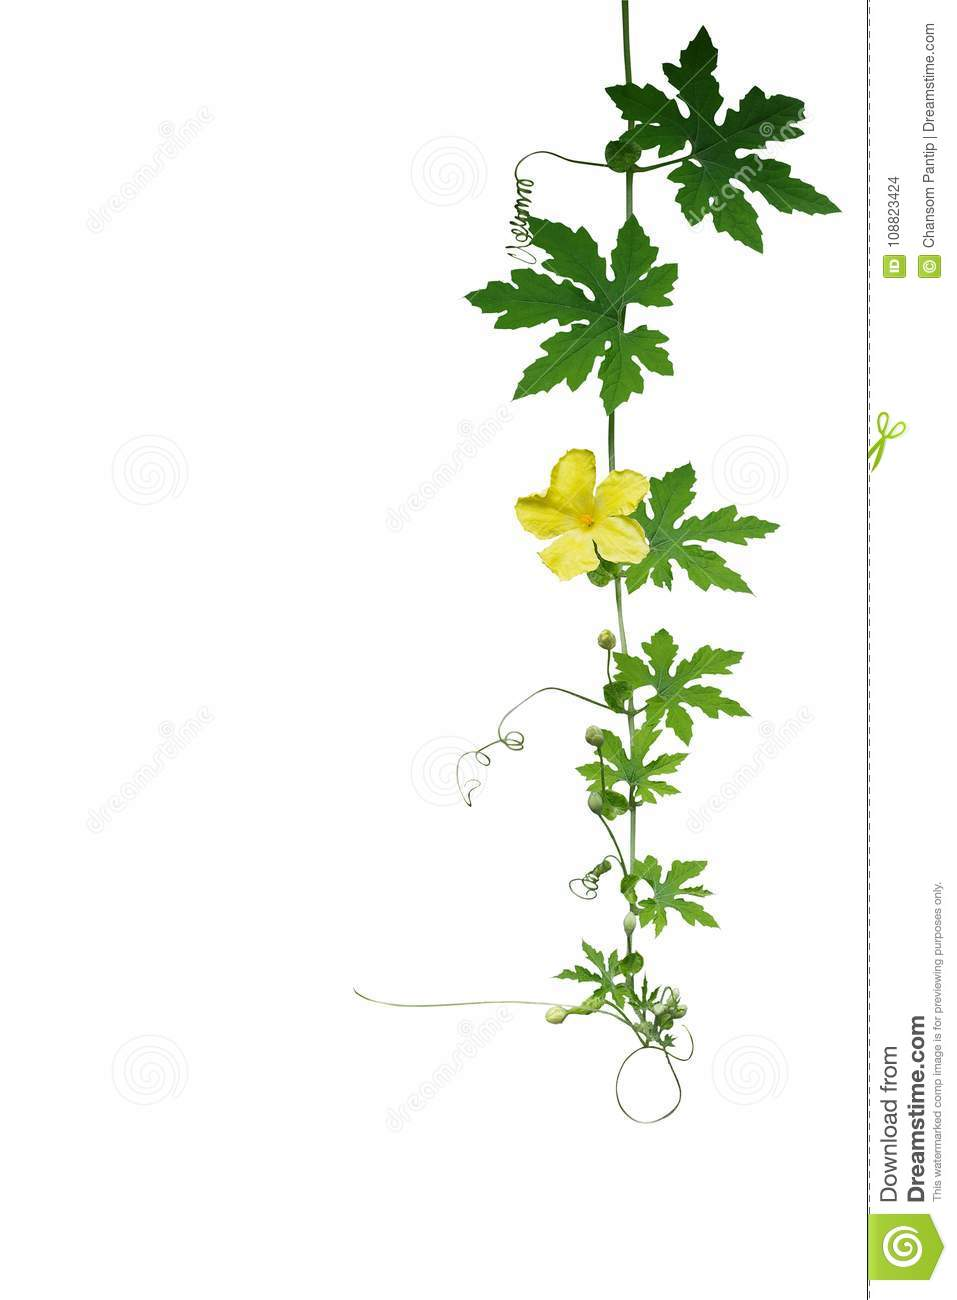 Green leaves climbing vine plant with tendrils and yellow flower download comp mightylinksfo